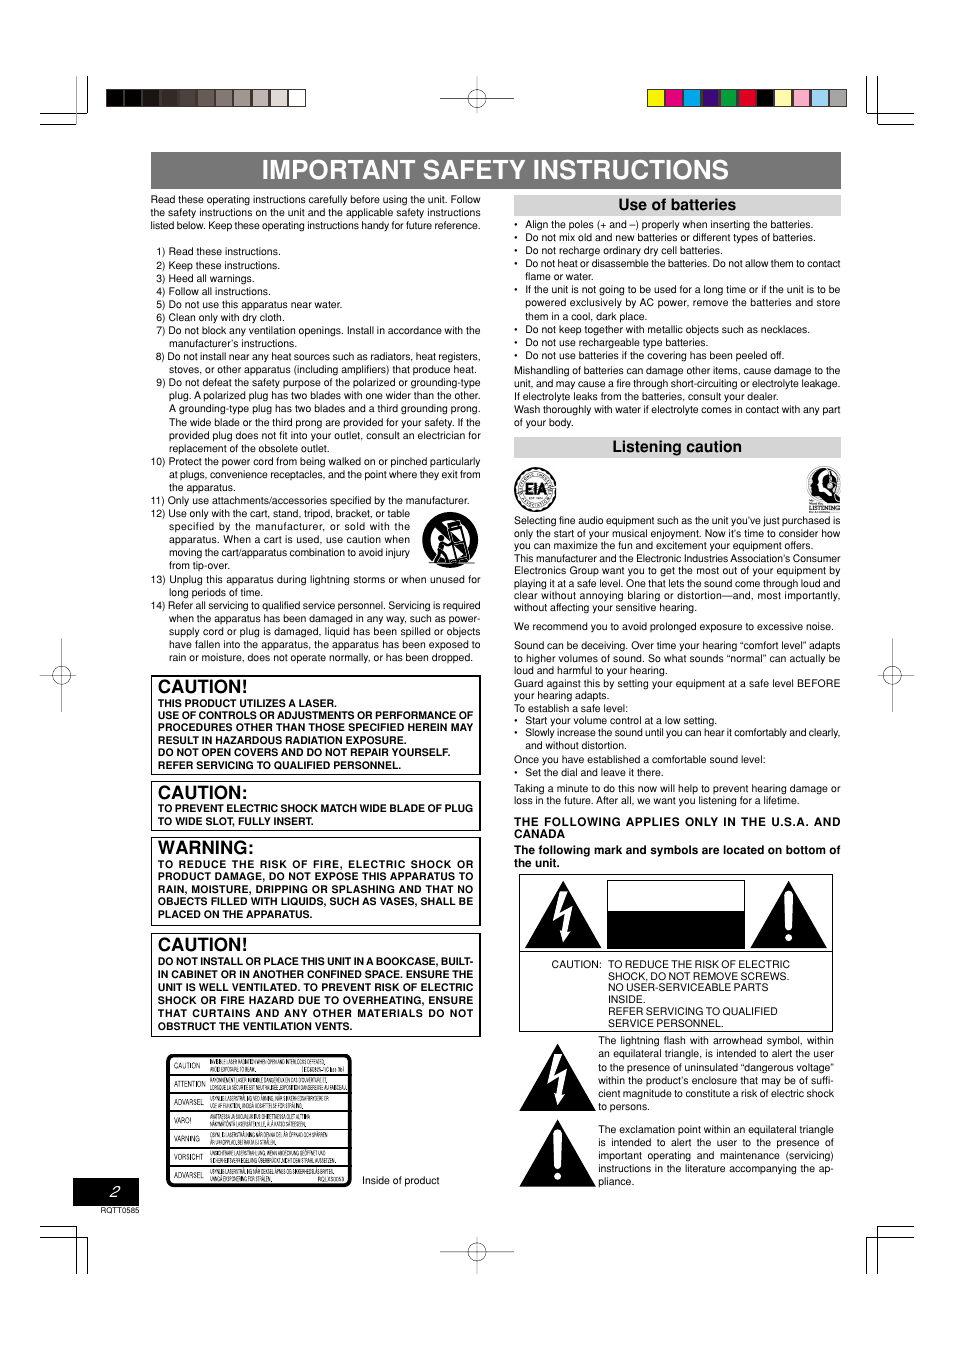 Important safety instructions, Caution, Warning